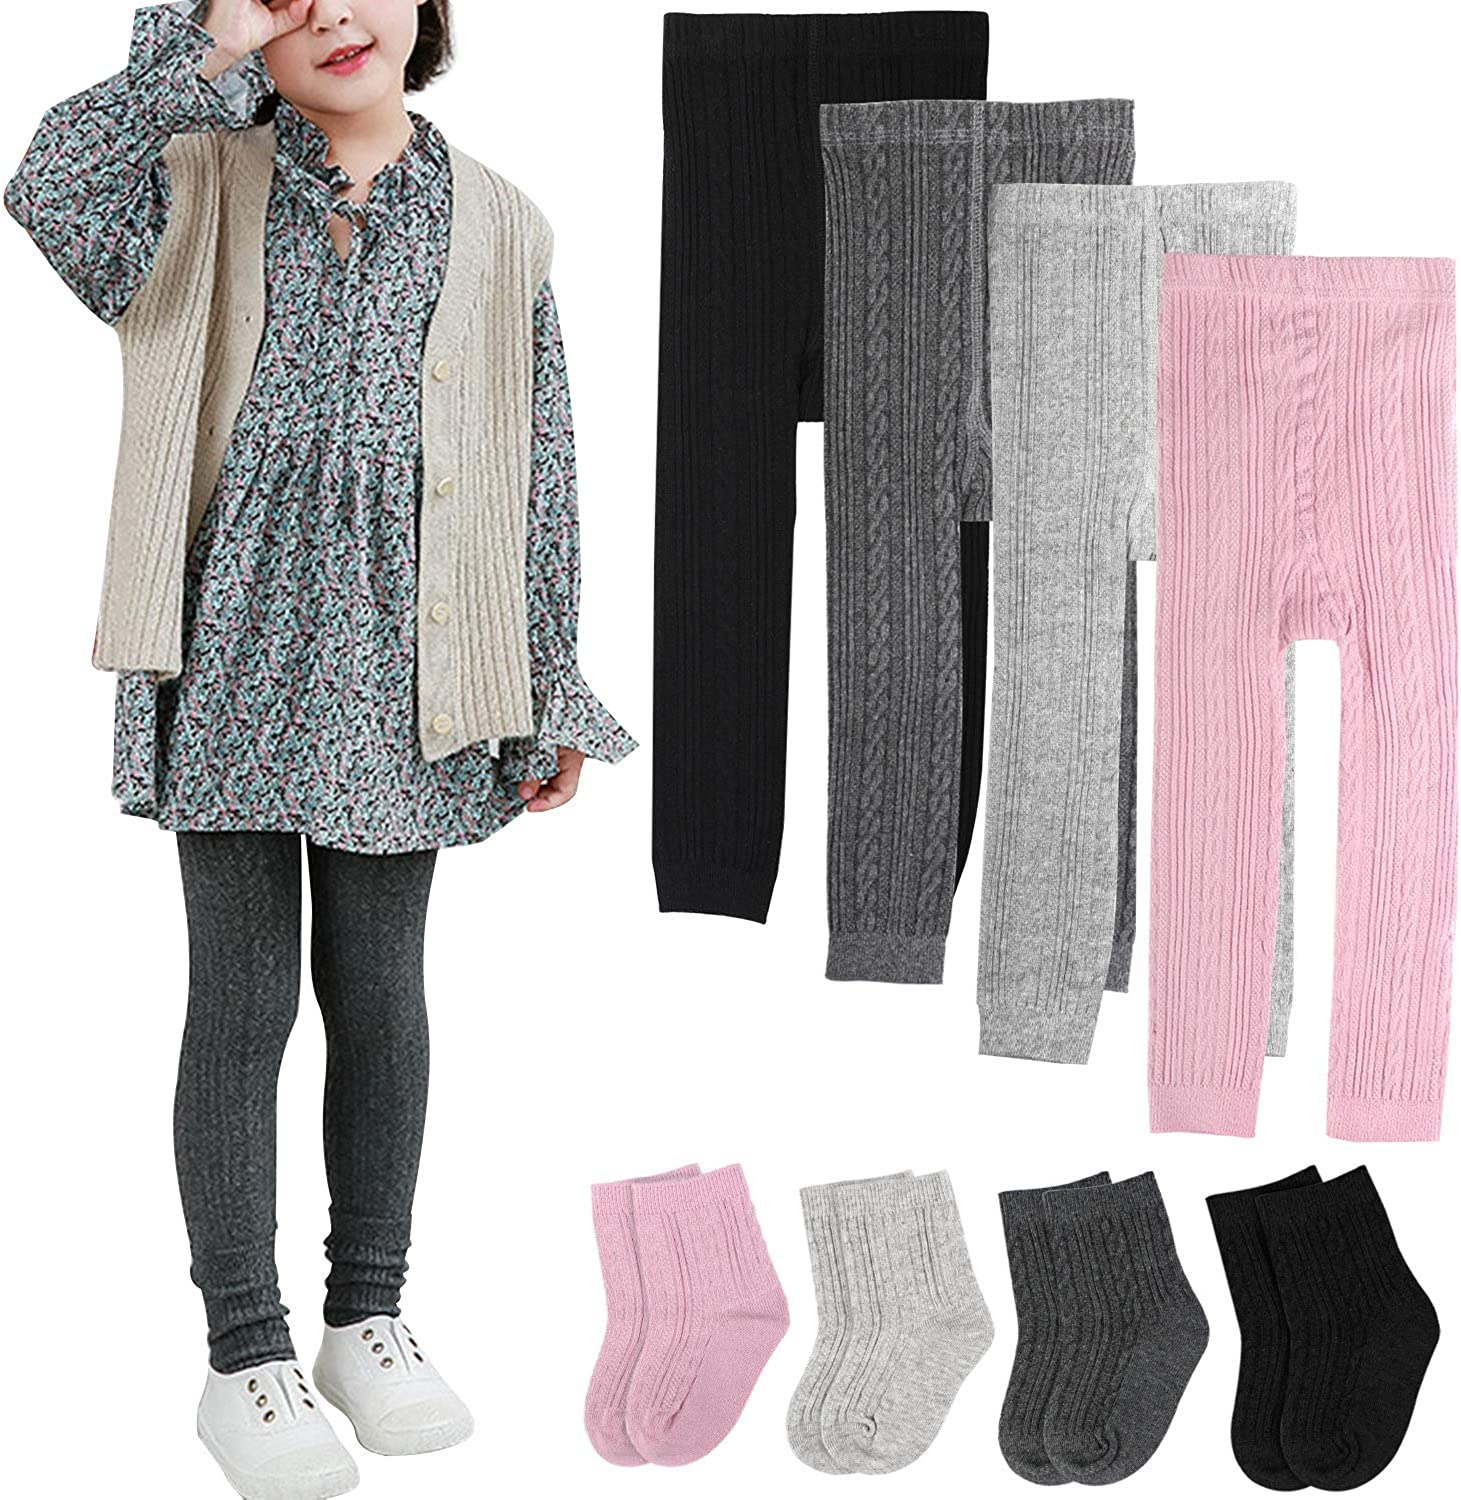 BOOPH 4 Pairs Girls Leggings Pants Sock Set Footless Knits Tights Stockings: Clothing